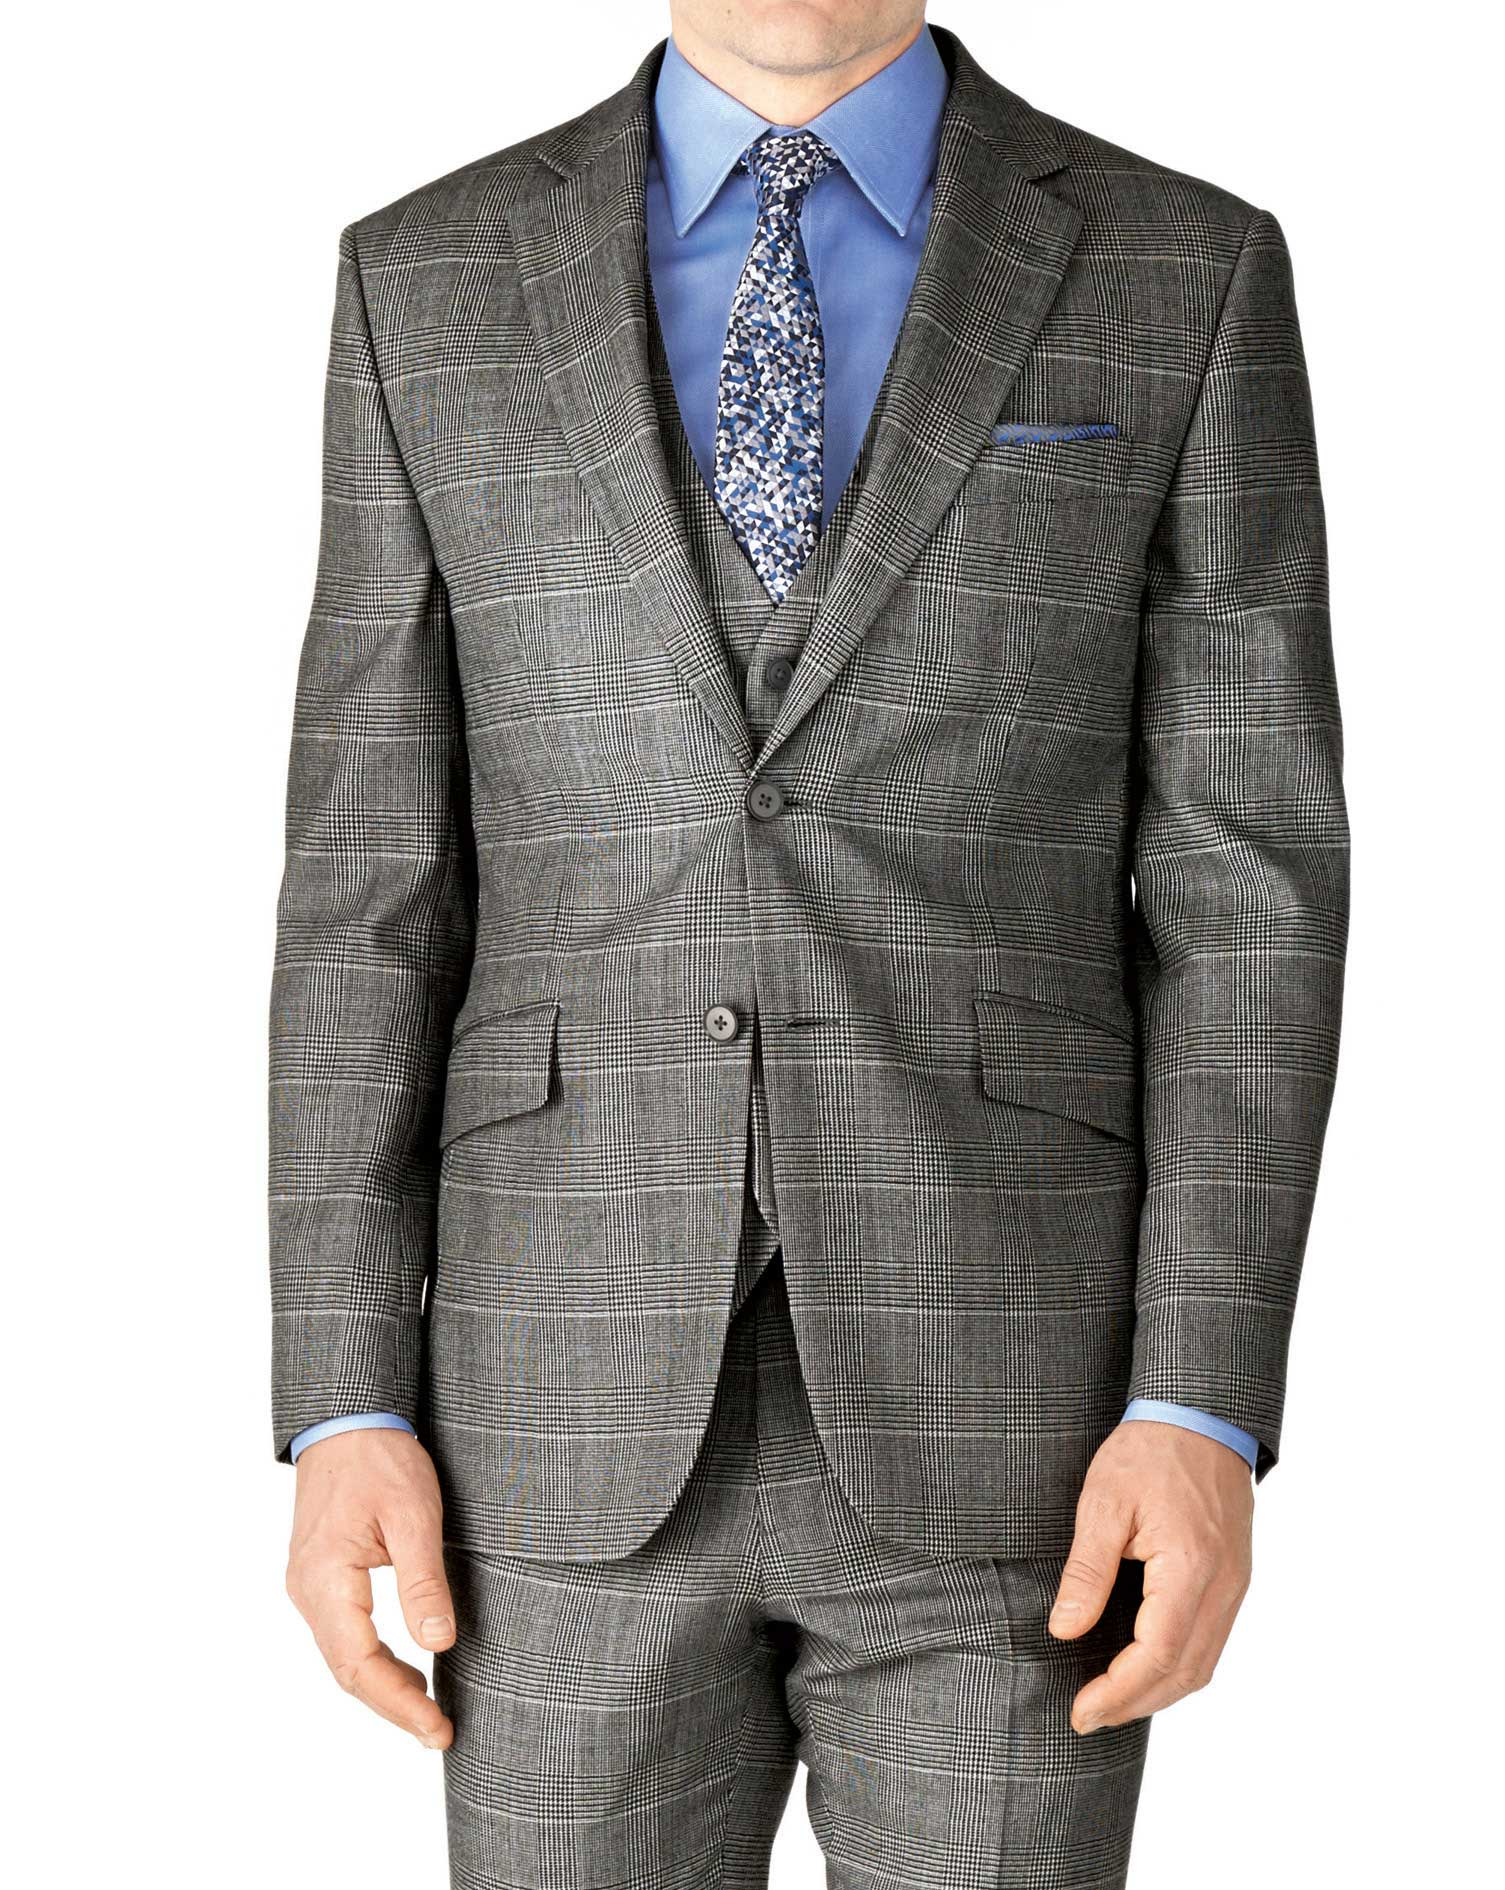 Grey Check Classic Fit Twill Business Suit Wool Jacket Size 36 Regular by Charles Tyrwhitt